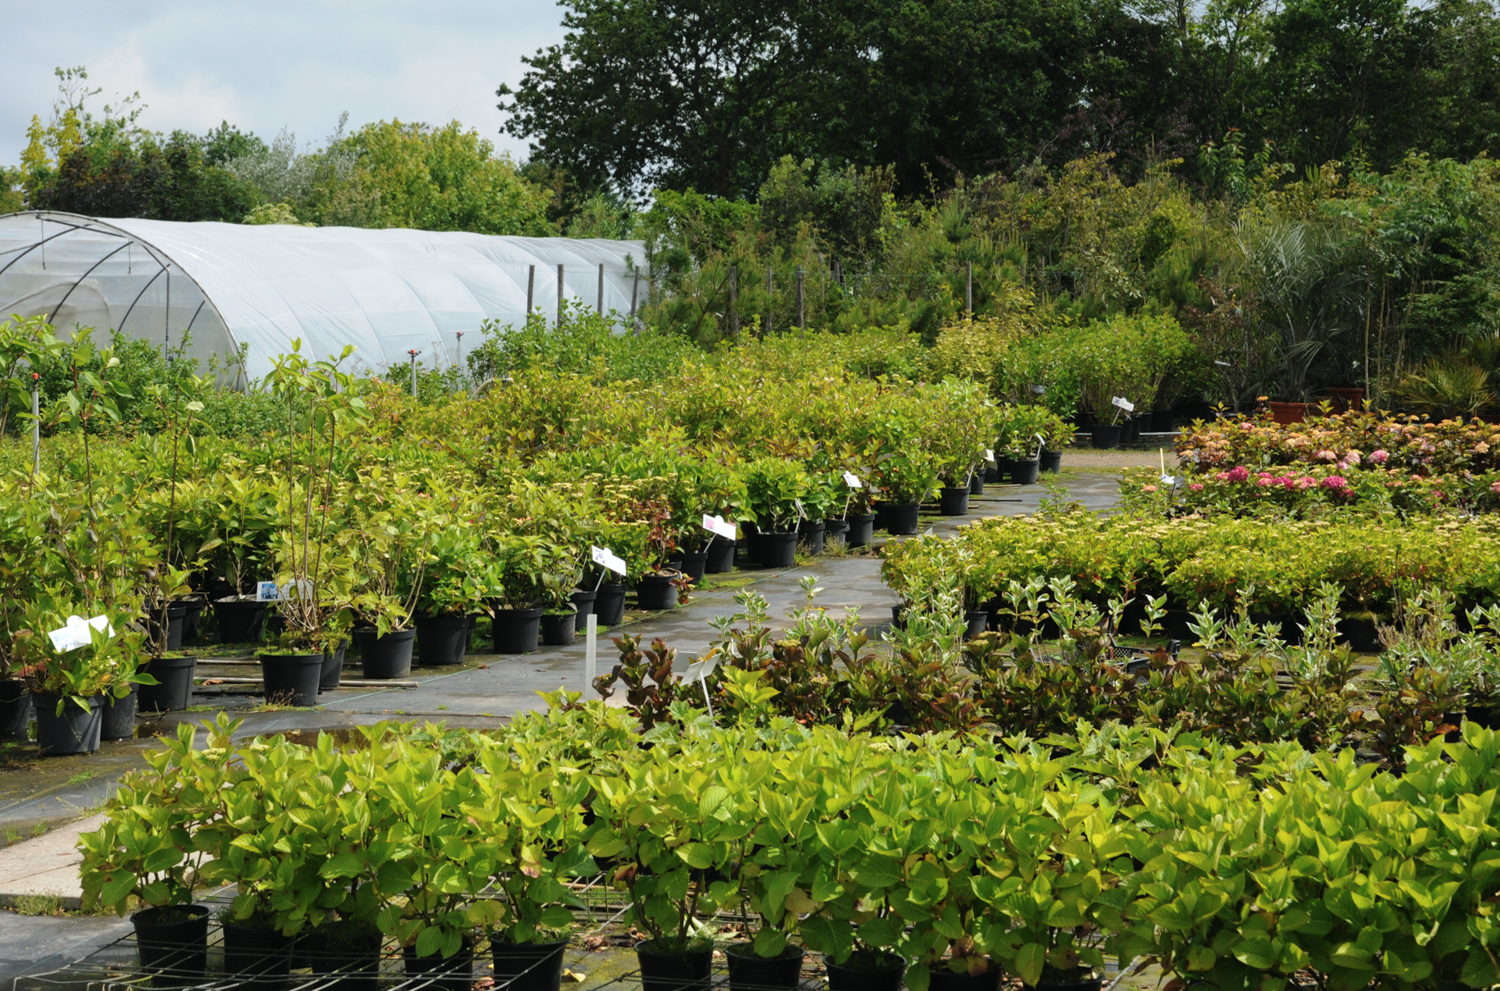 Landscaping Nursery And Garden Supplies Wholesale nursery garden center orange county ny rockland ulster best landscape nursery supply company in rockland county workwithnaturefo